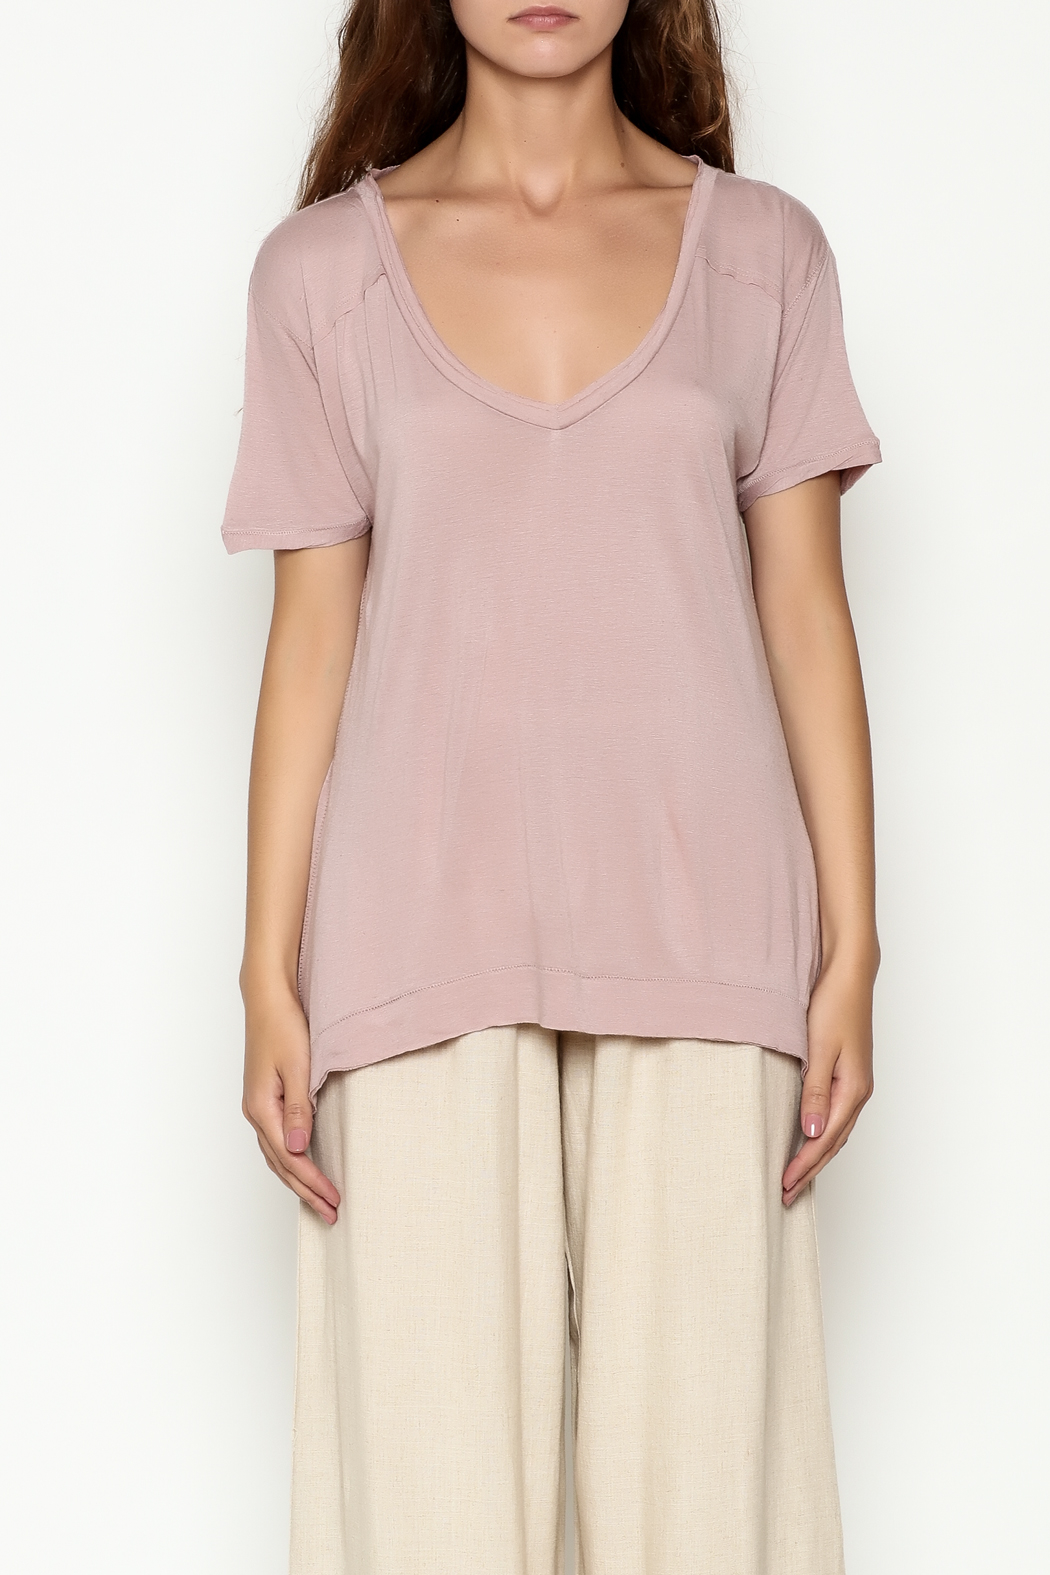 Olive & Oak Mauve V Neck Top - Front Full Image